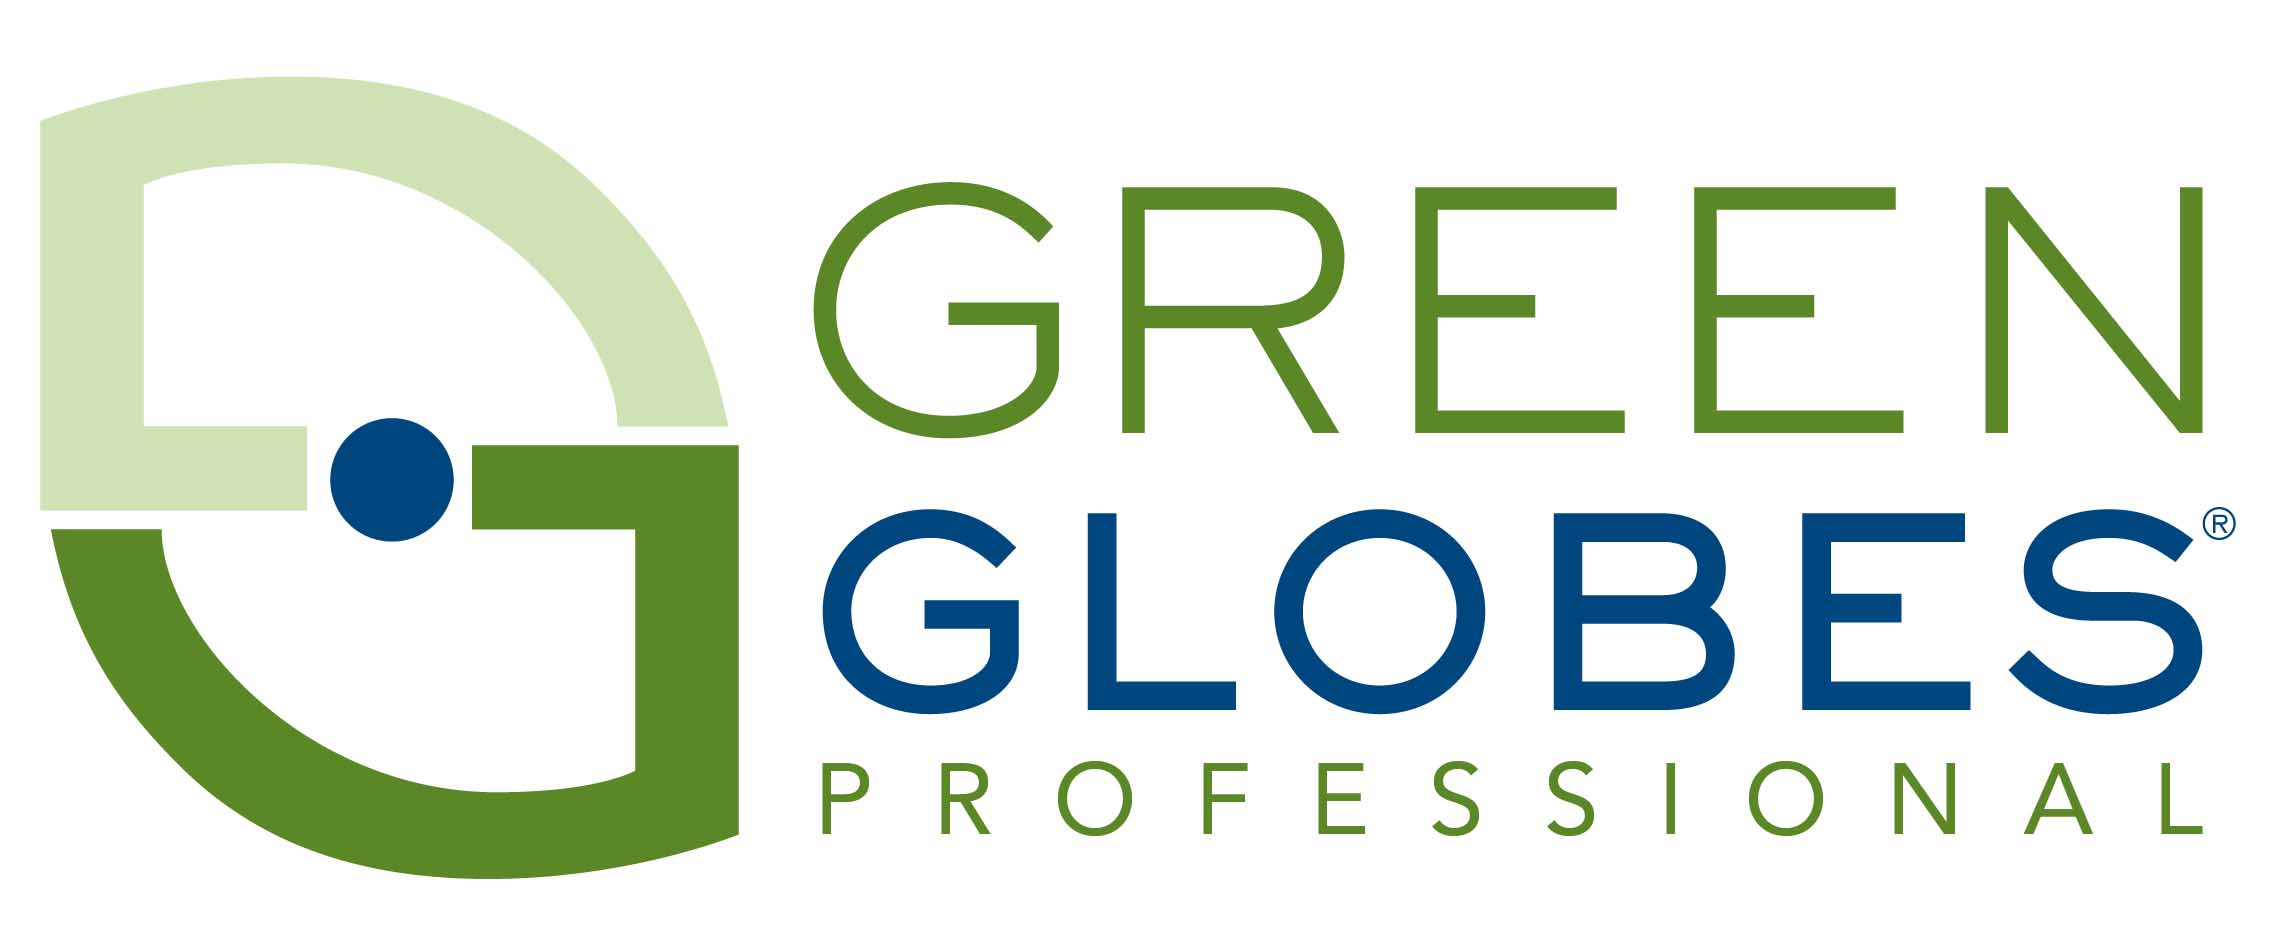 Green building initiative professional certification green globes professional 1betcityfo Gallery